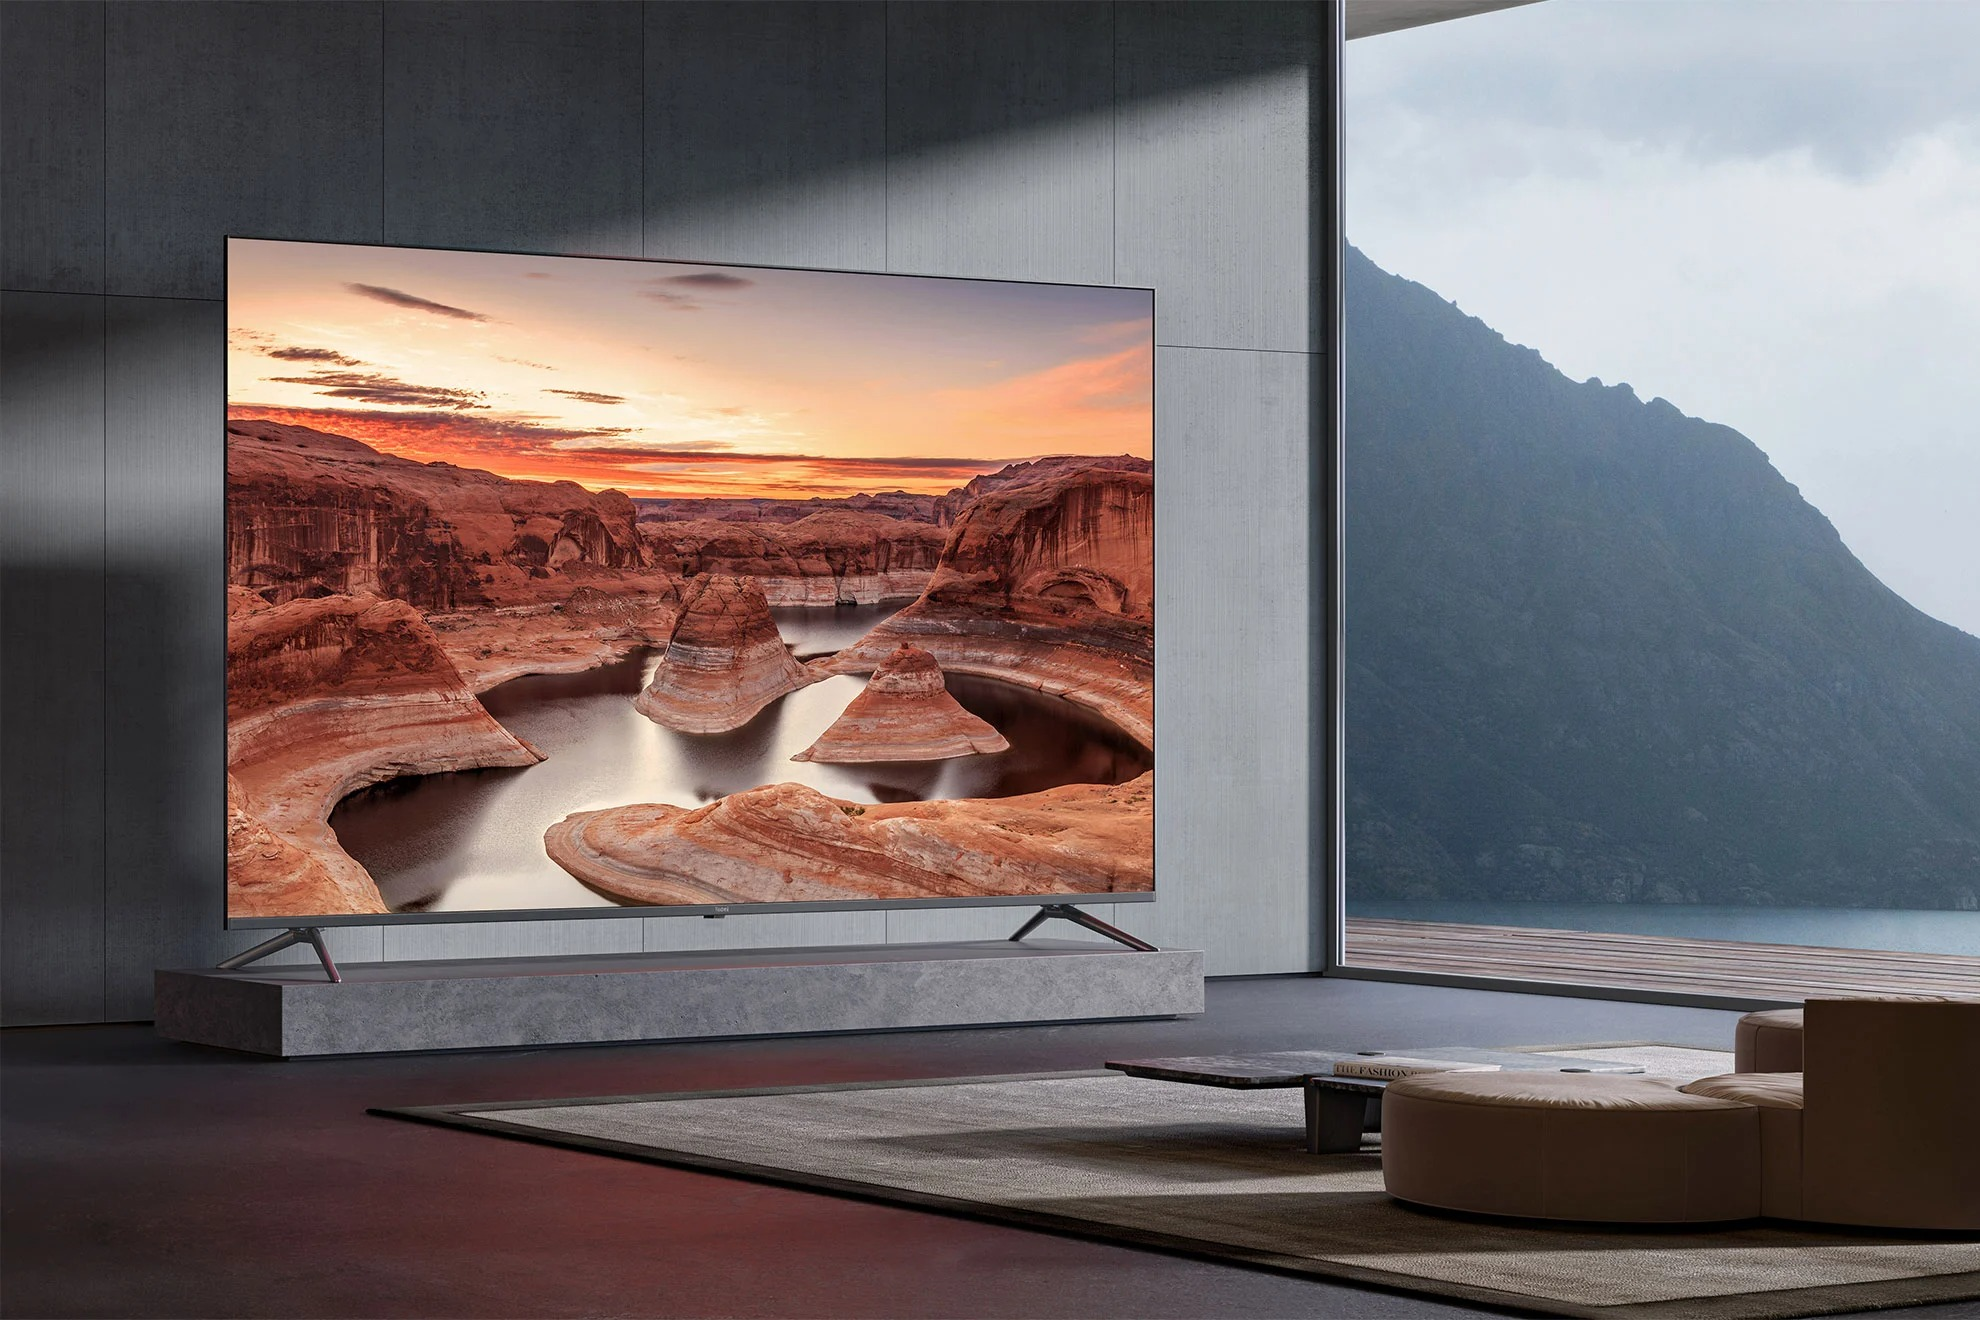 Redmi MAX TV 86-inch with 4K 120Hz display launched: price, specifications